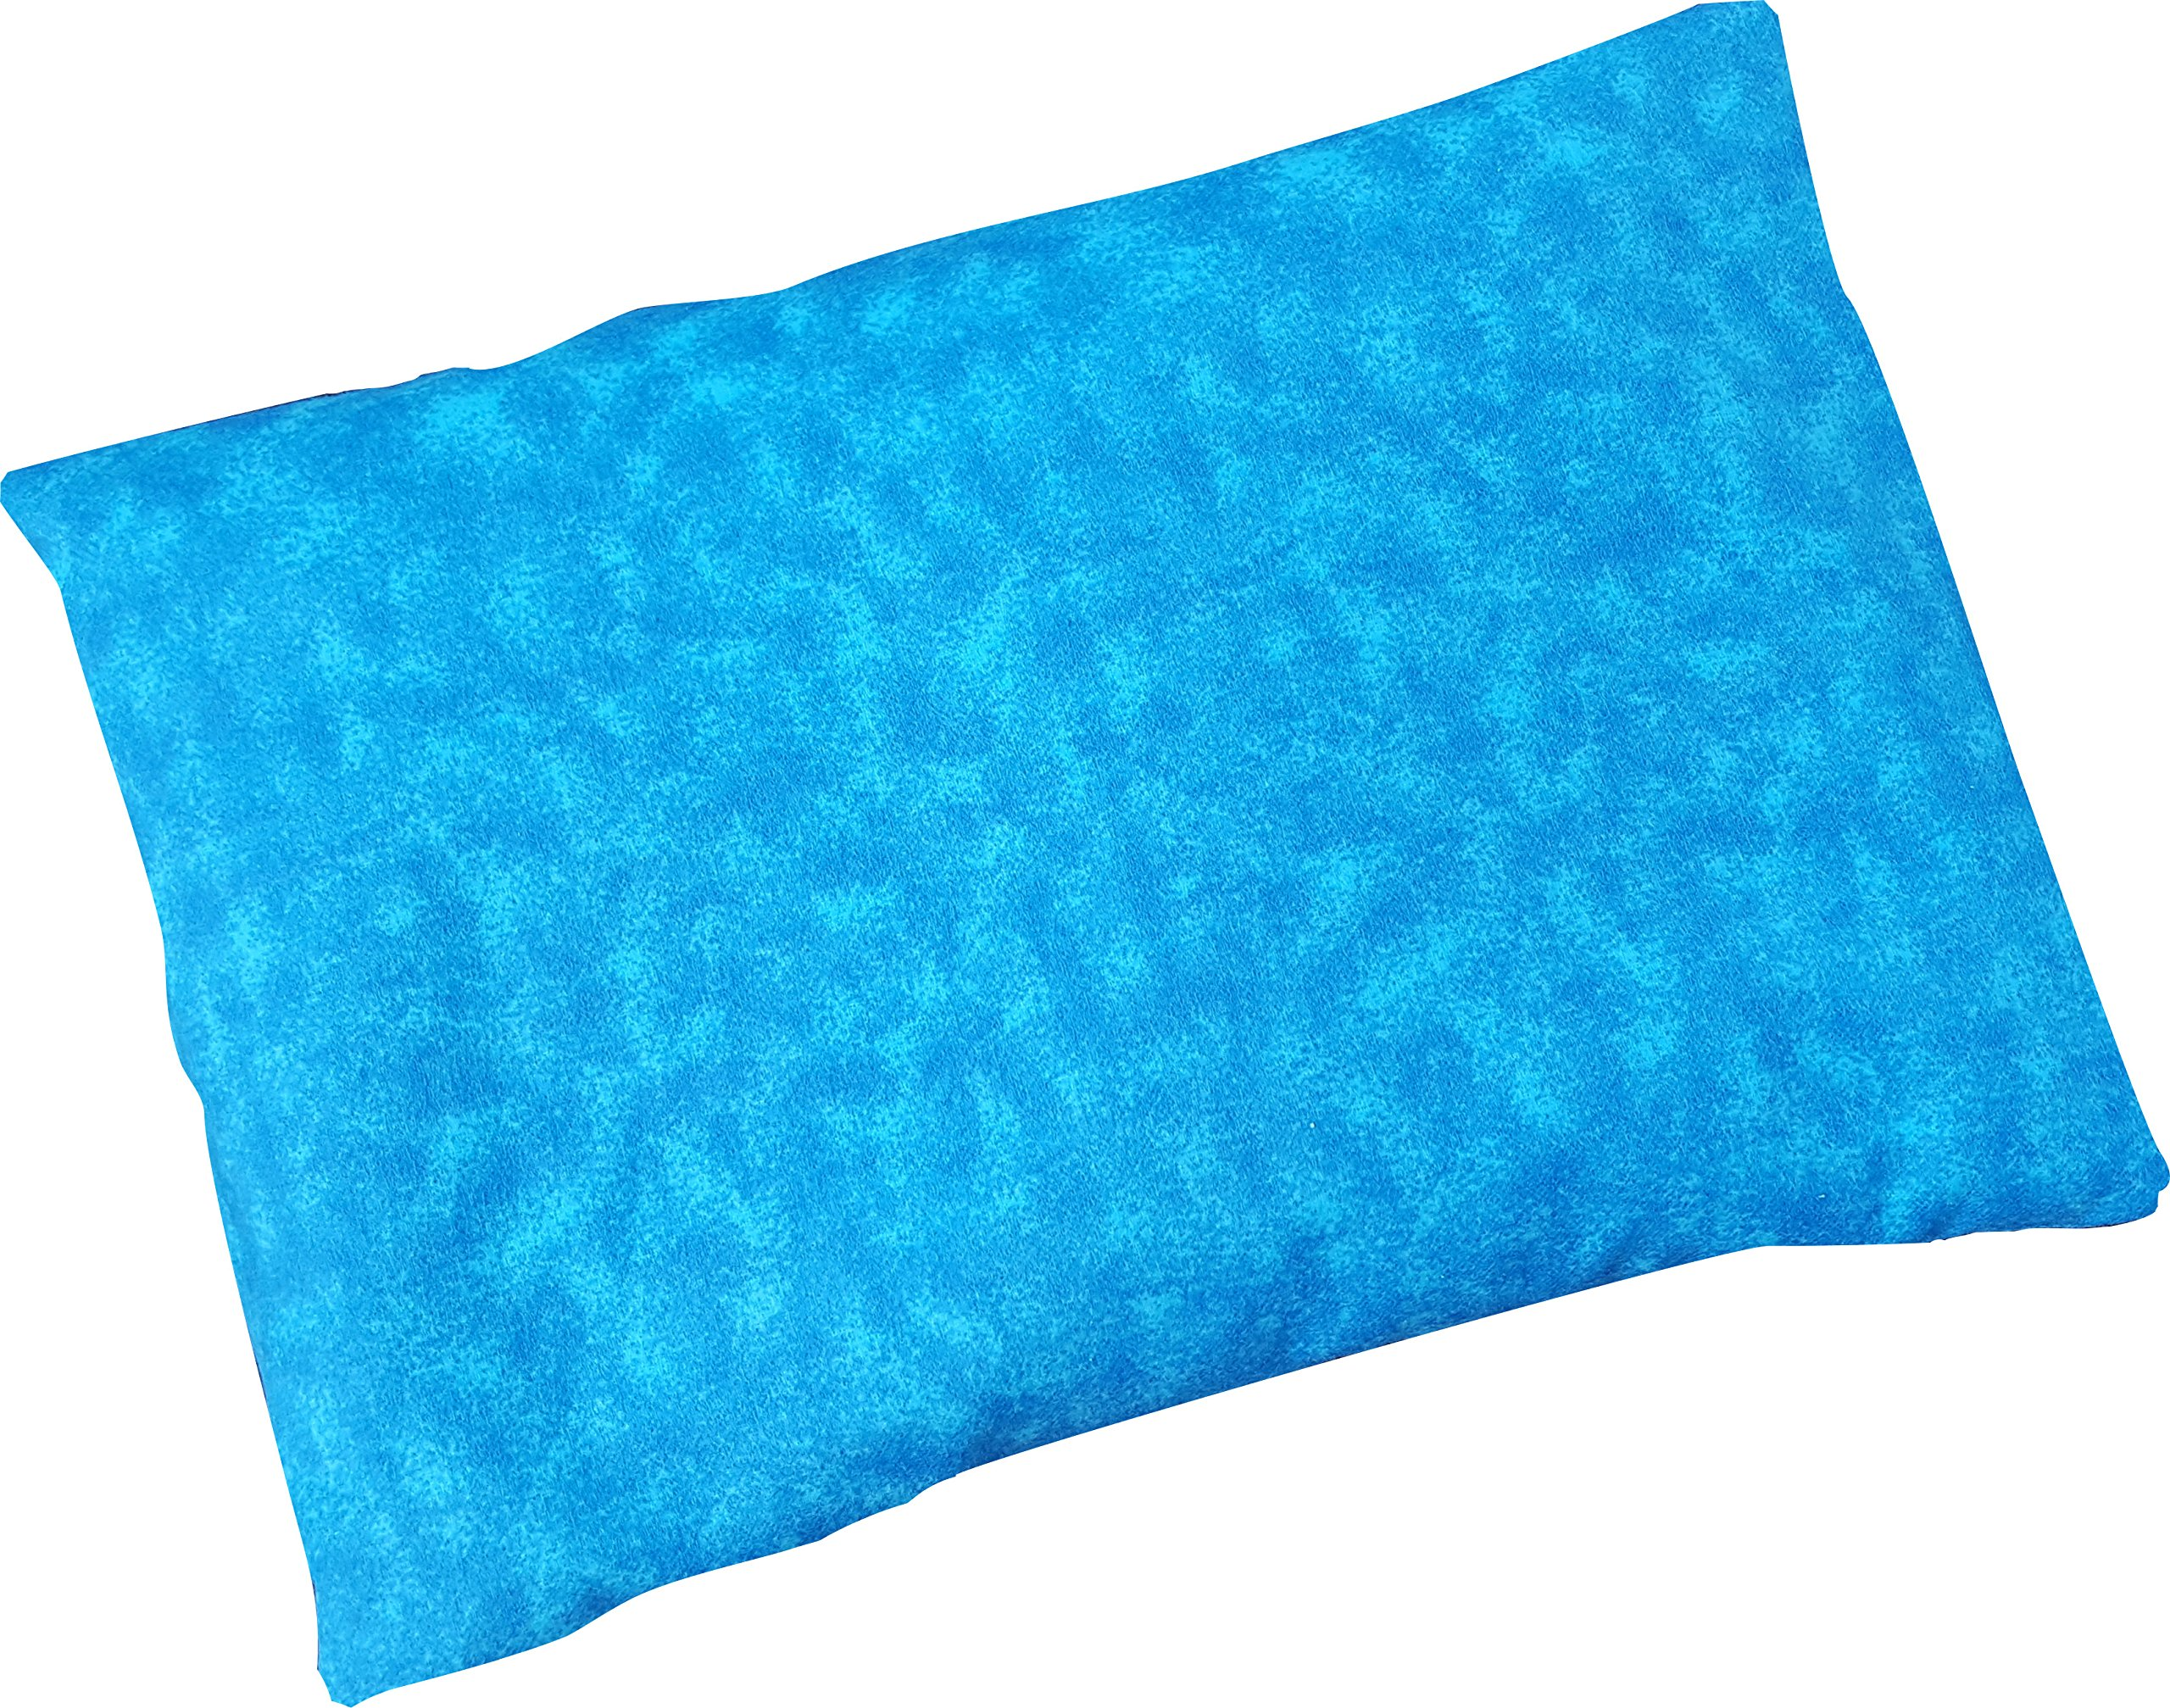 Microwavable Corn Filled Heating Pad and Cold Pack/Washable 100% Cotton Cover (7.5''Wx11''L, Blue Stream) by Caylee's Creations